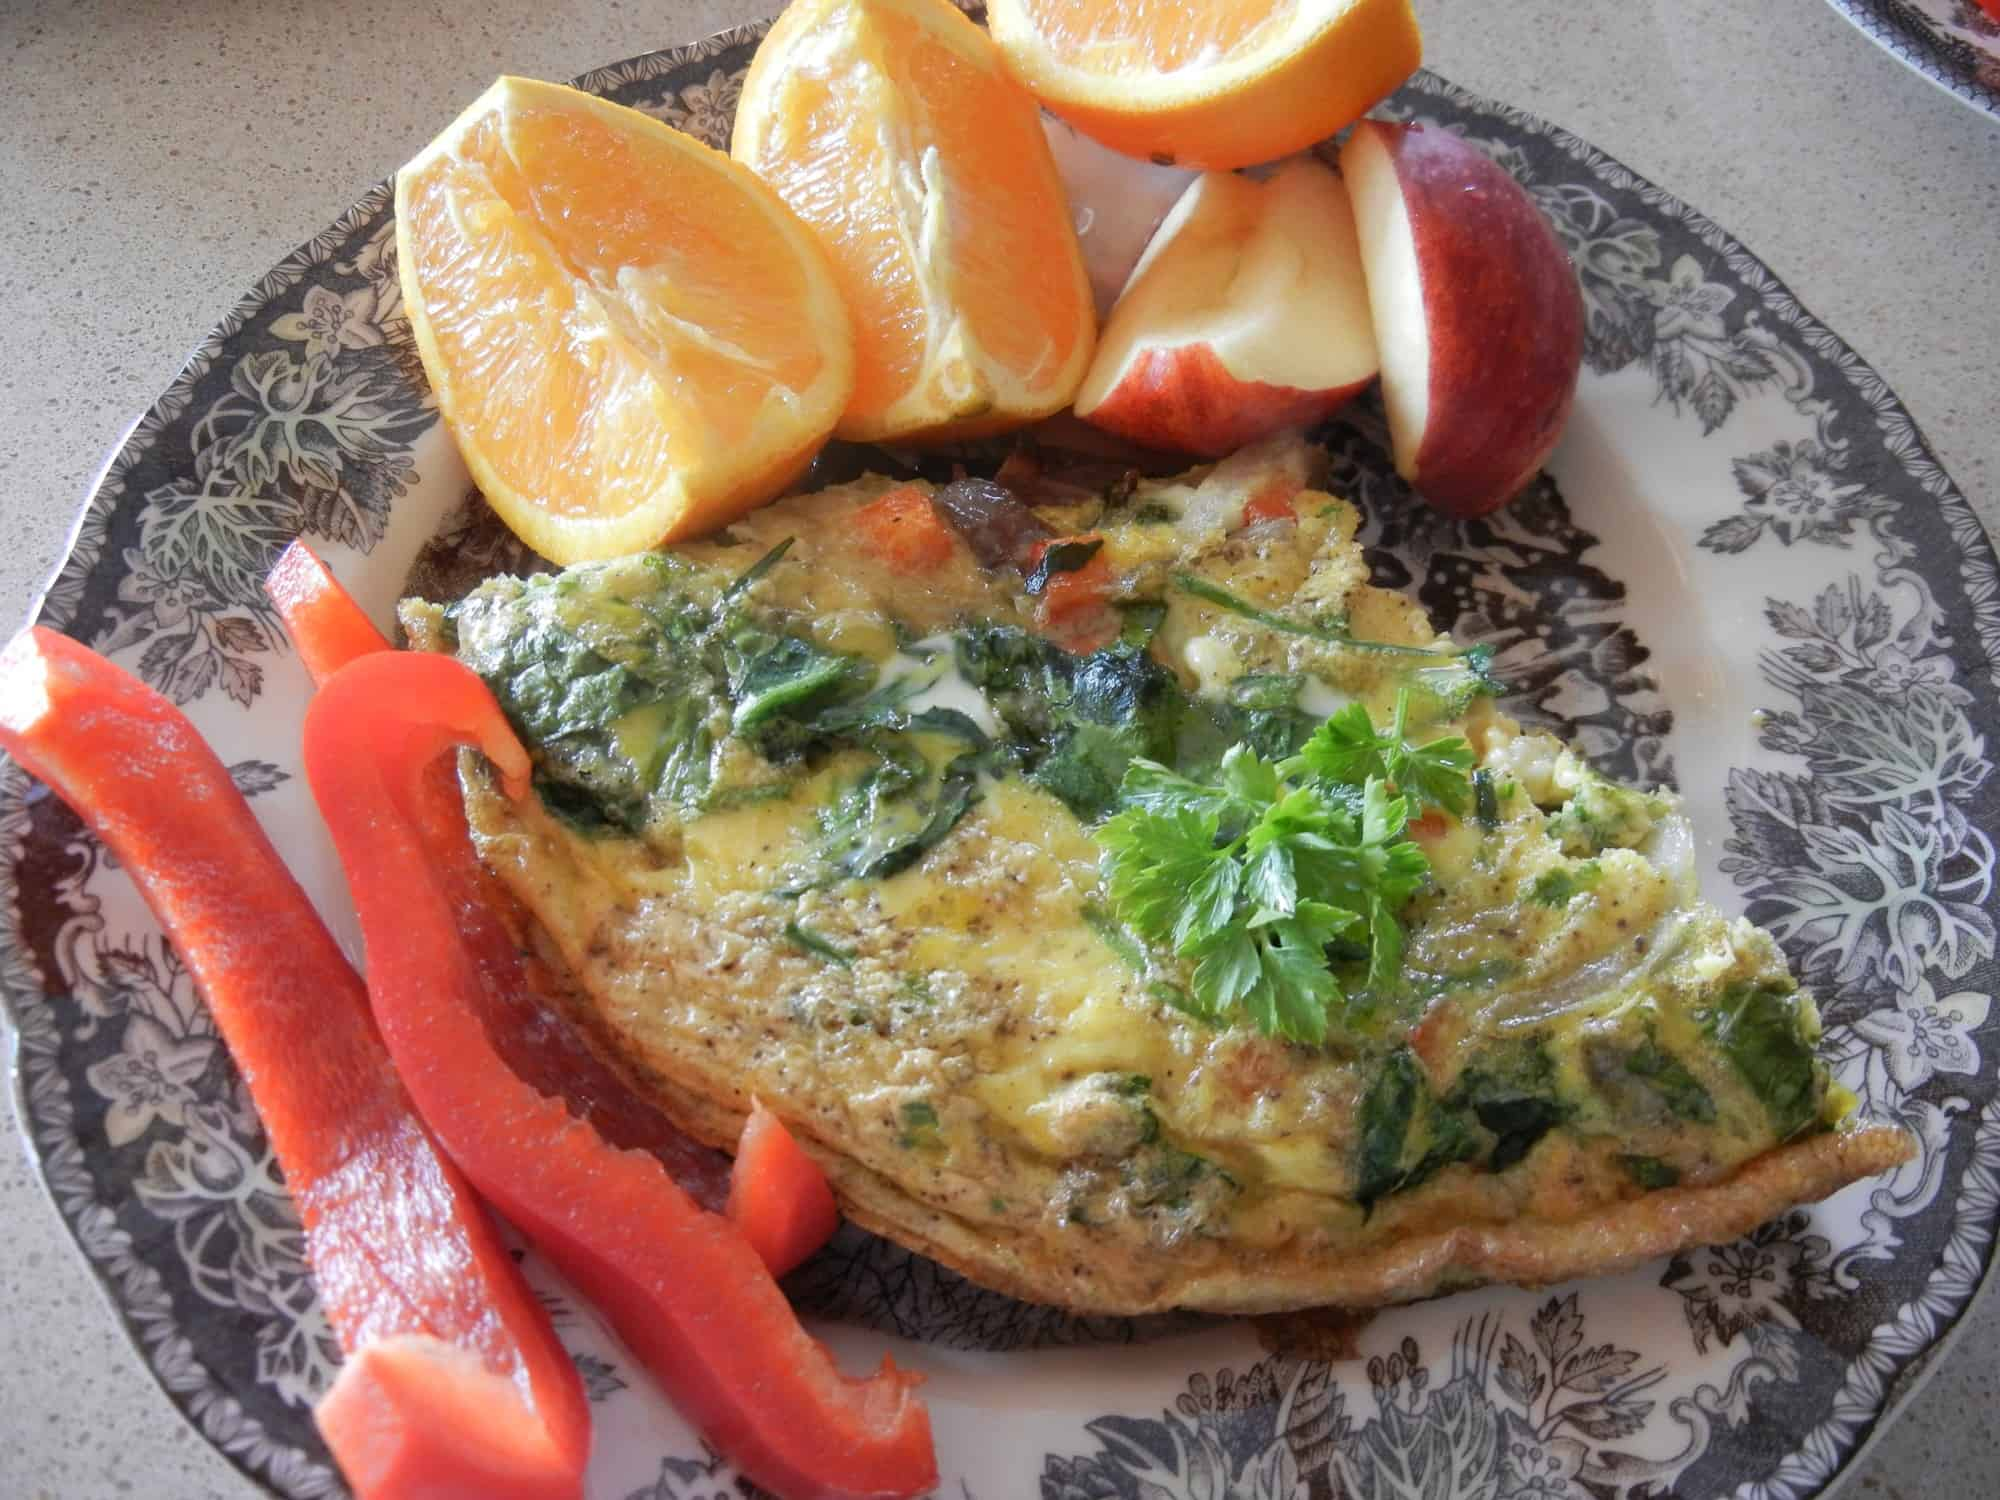 Cast Iron Skillet Frittata: Quick and Easy. Slice of frittata, Italian omelet